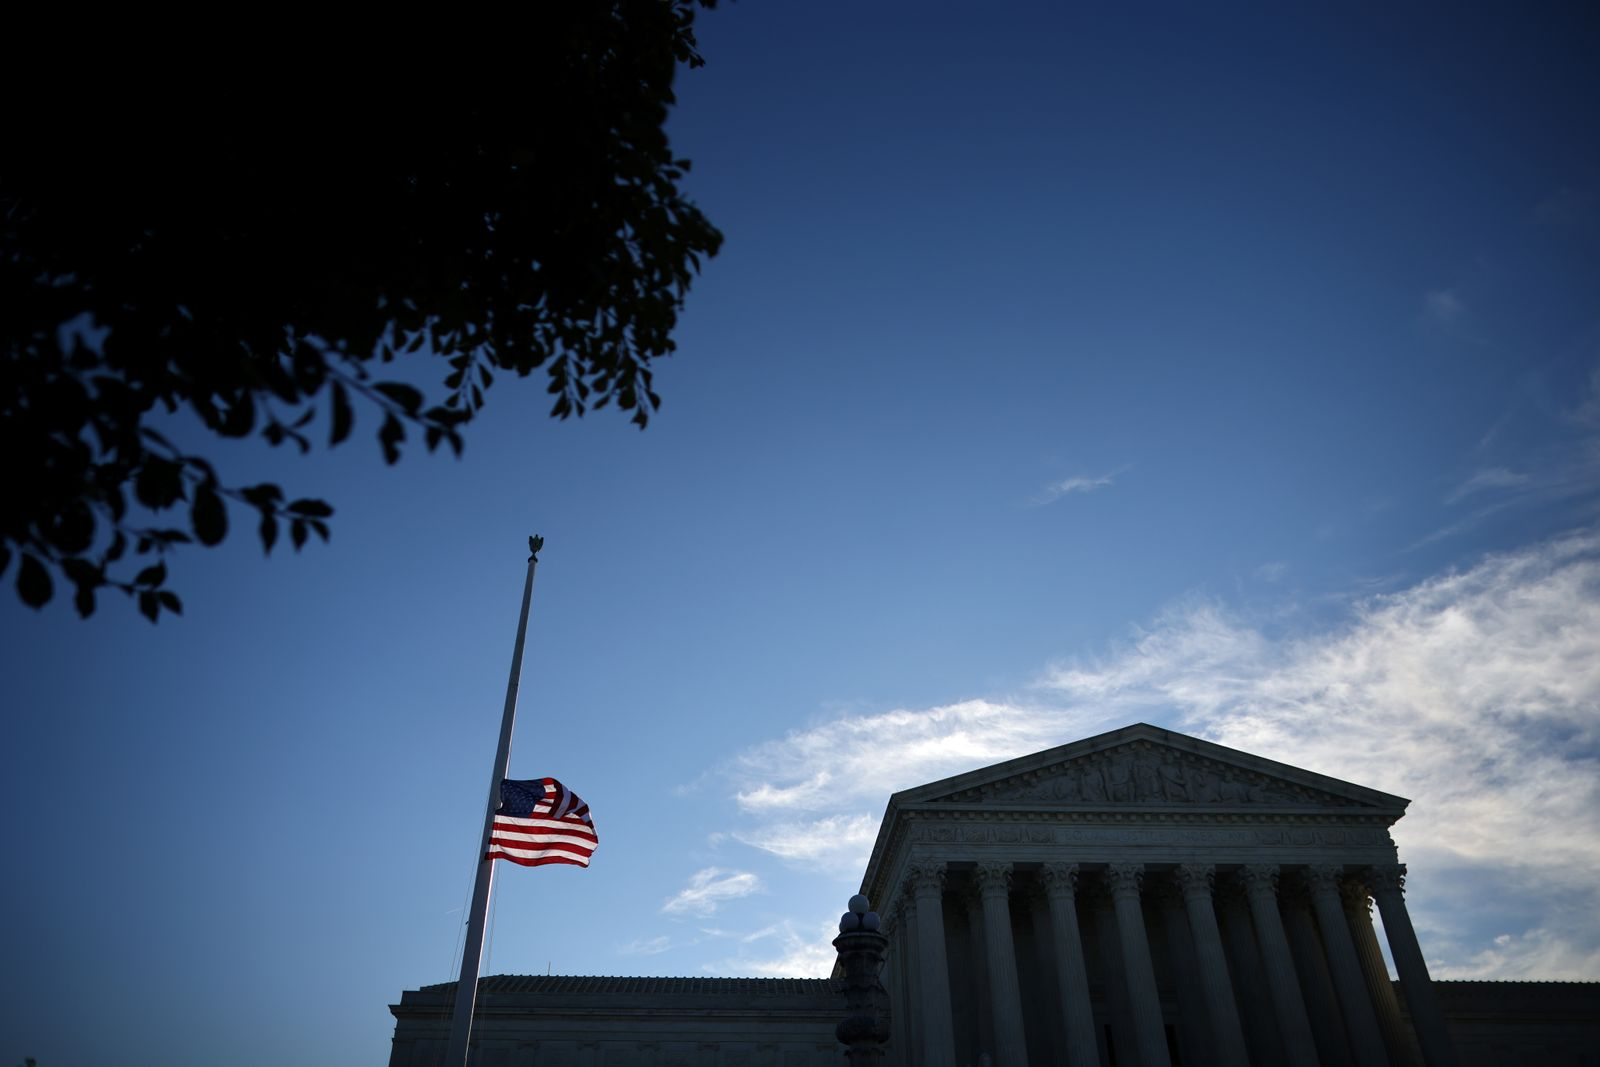 U.S. flag is seen at half mast as people gather in front of the U.S. Supreme Court following the death of U.S. Supreme Court Justice Ruth Bader Ginsburg, in Washington